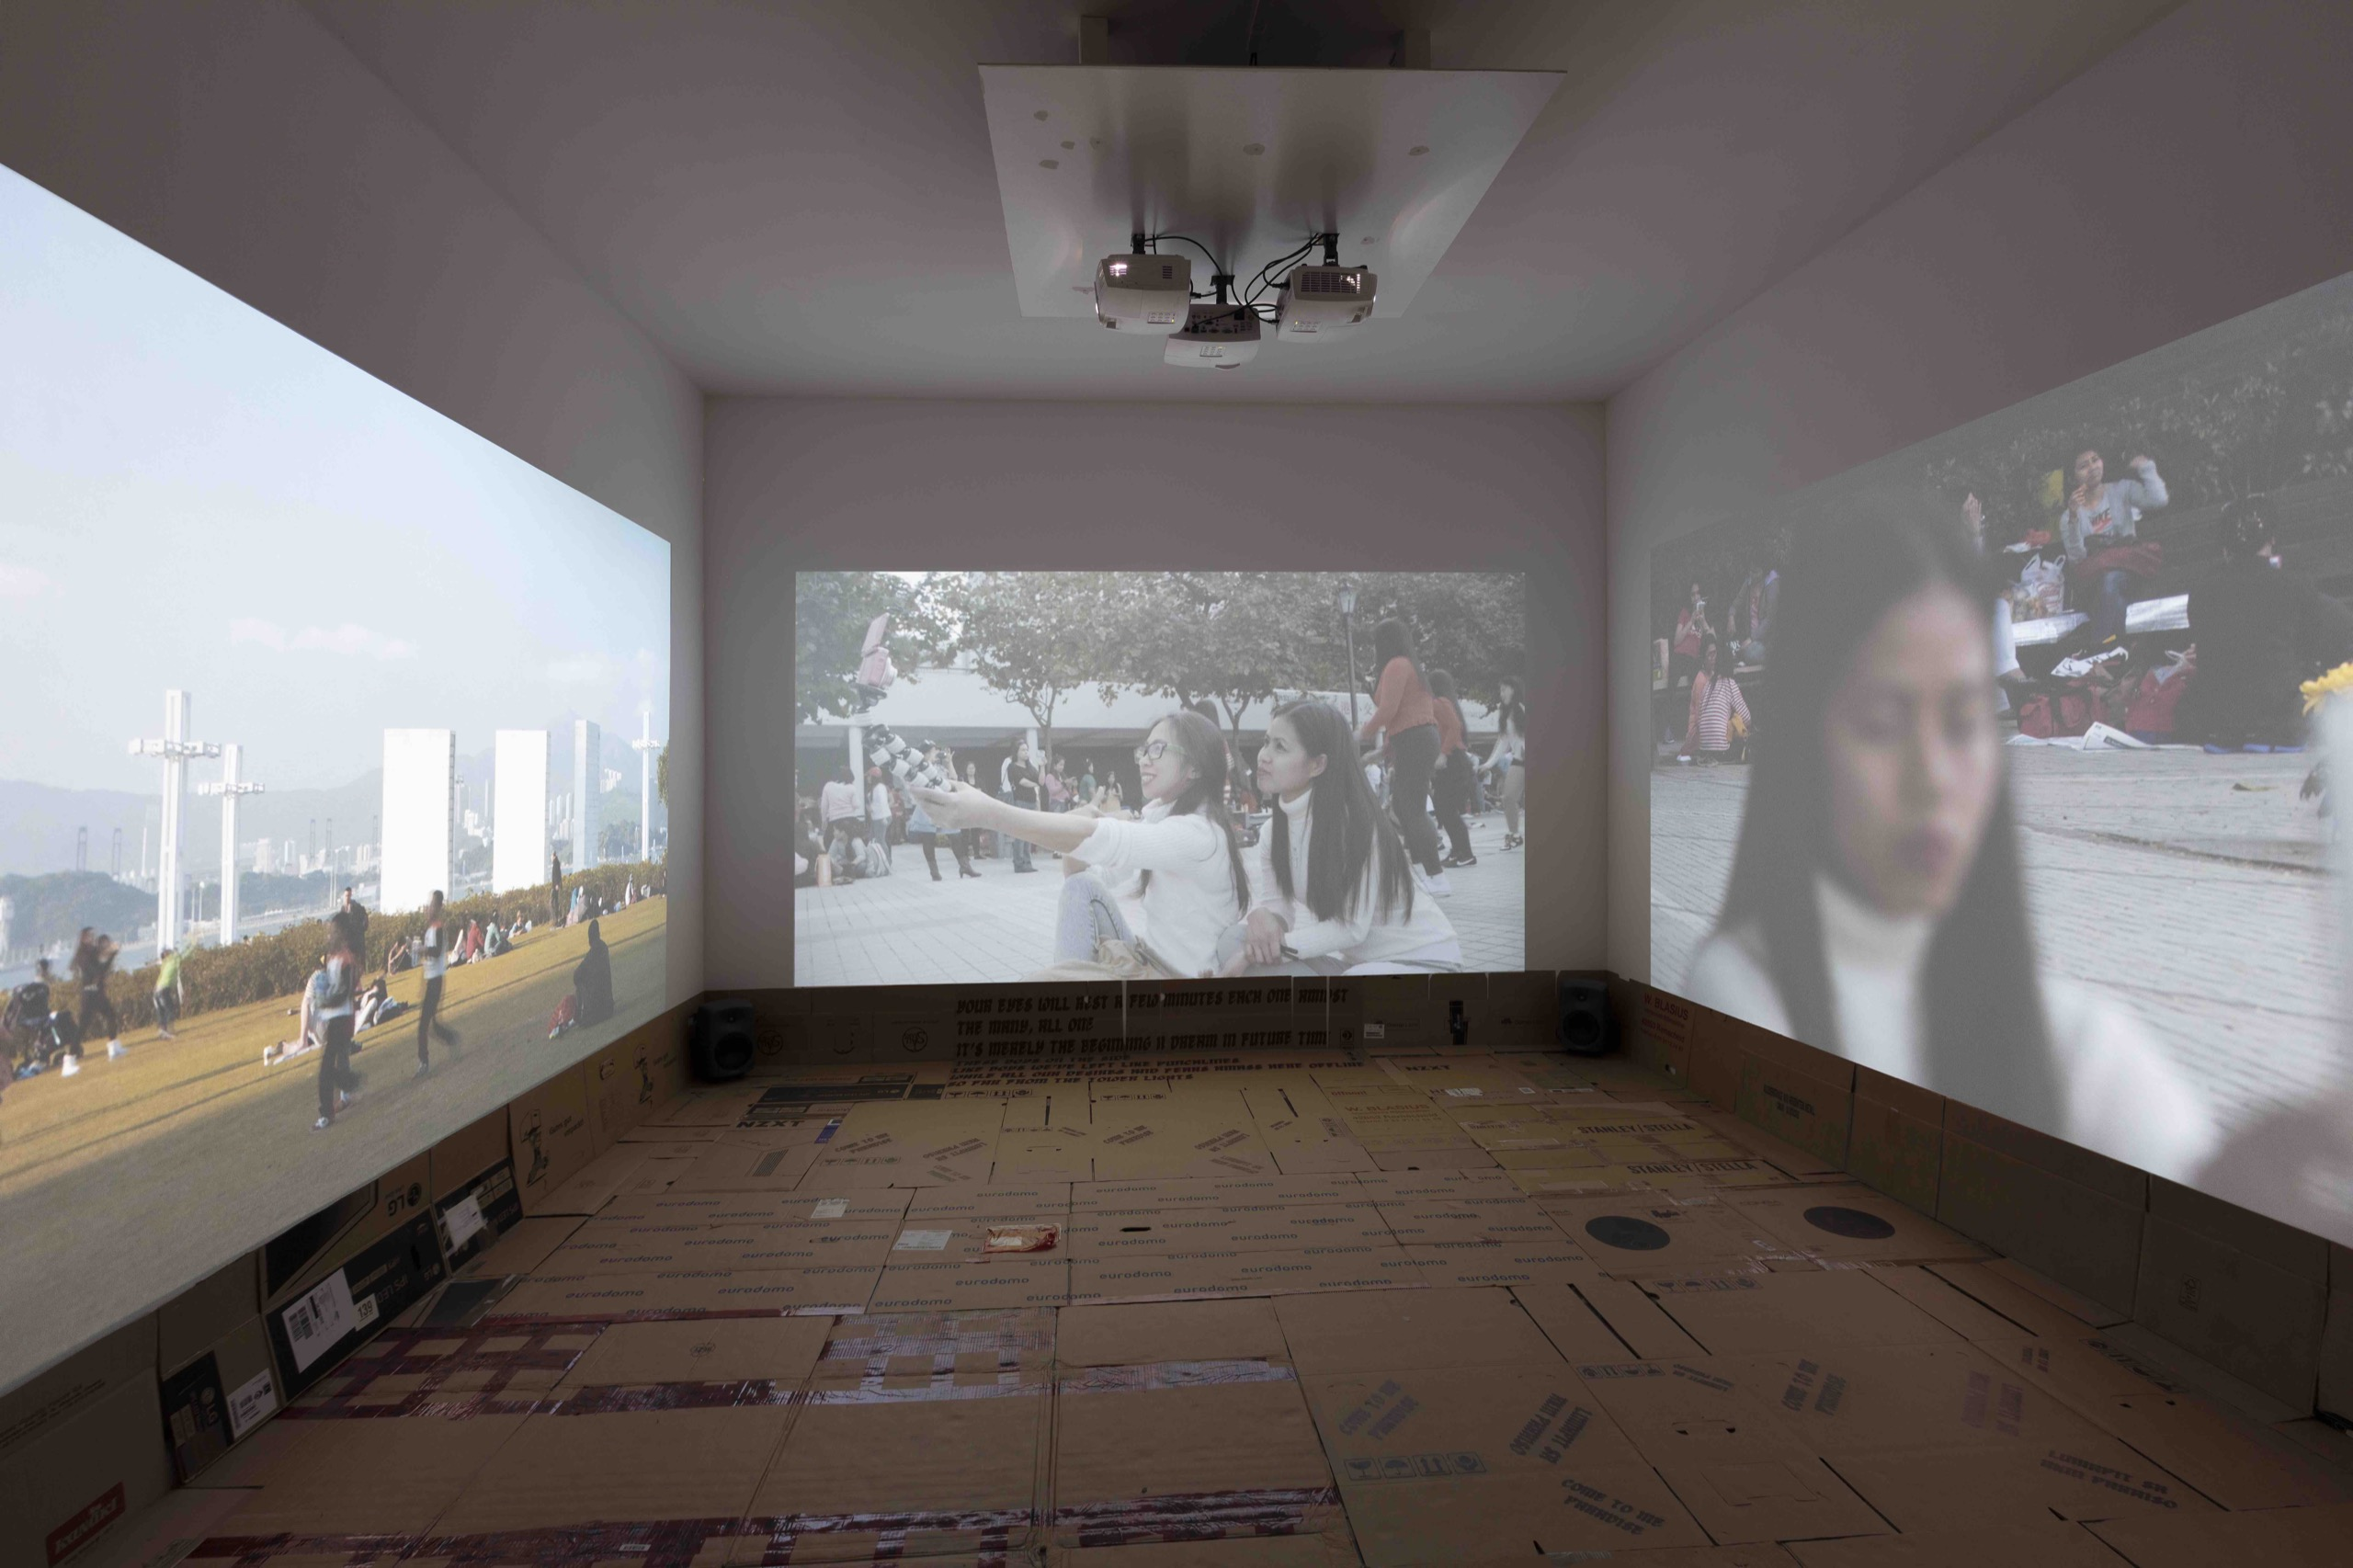 Stephanie Comilang, Lumapit Sa Akin, Paraiso (Come to Me, Paradise), 2016, 3 channel video projection, cardboards,  UV print texts on cardboard 25:46